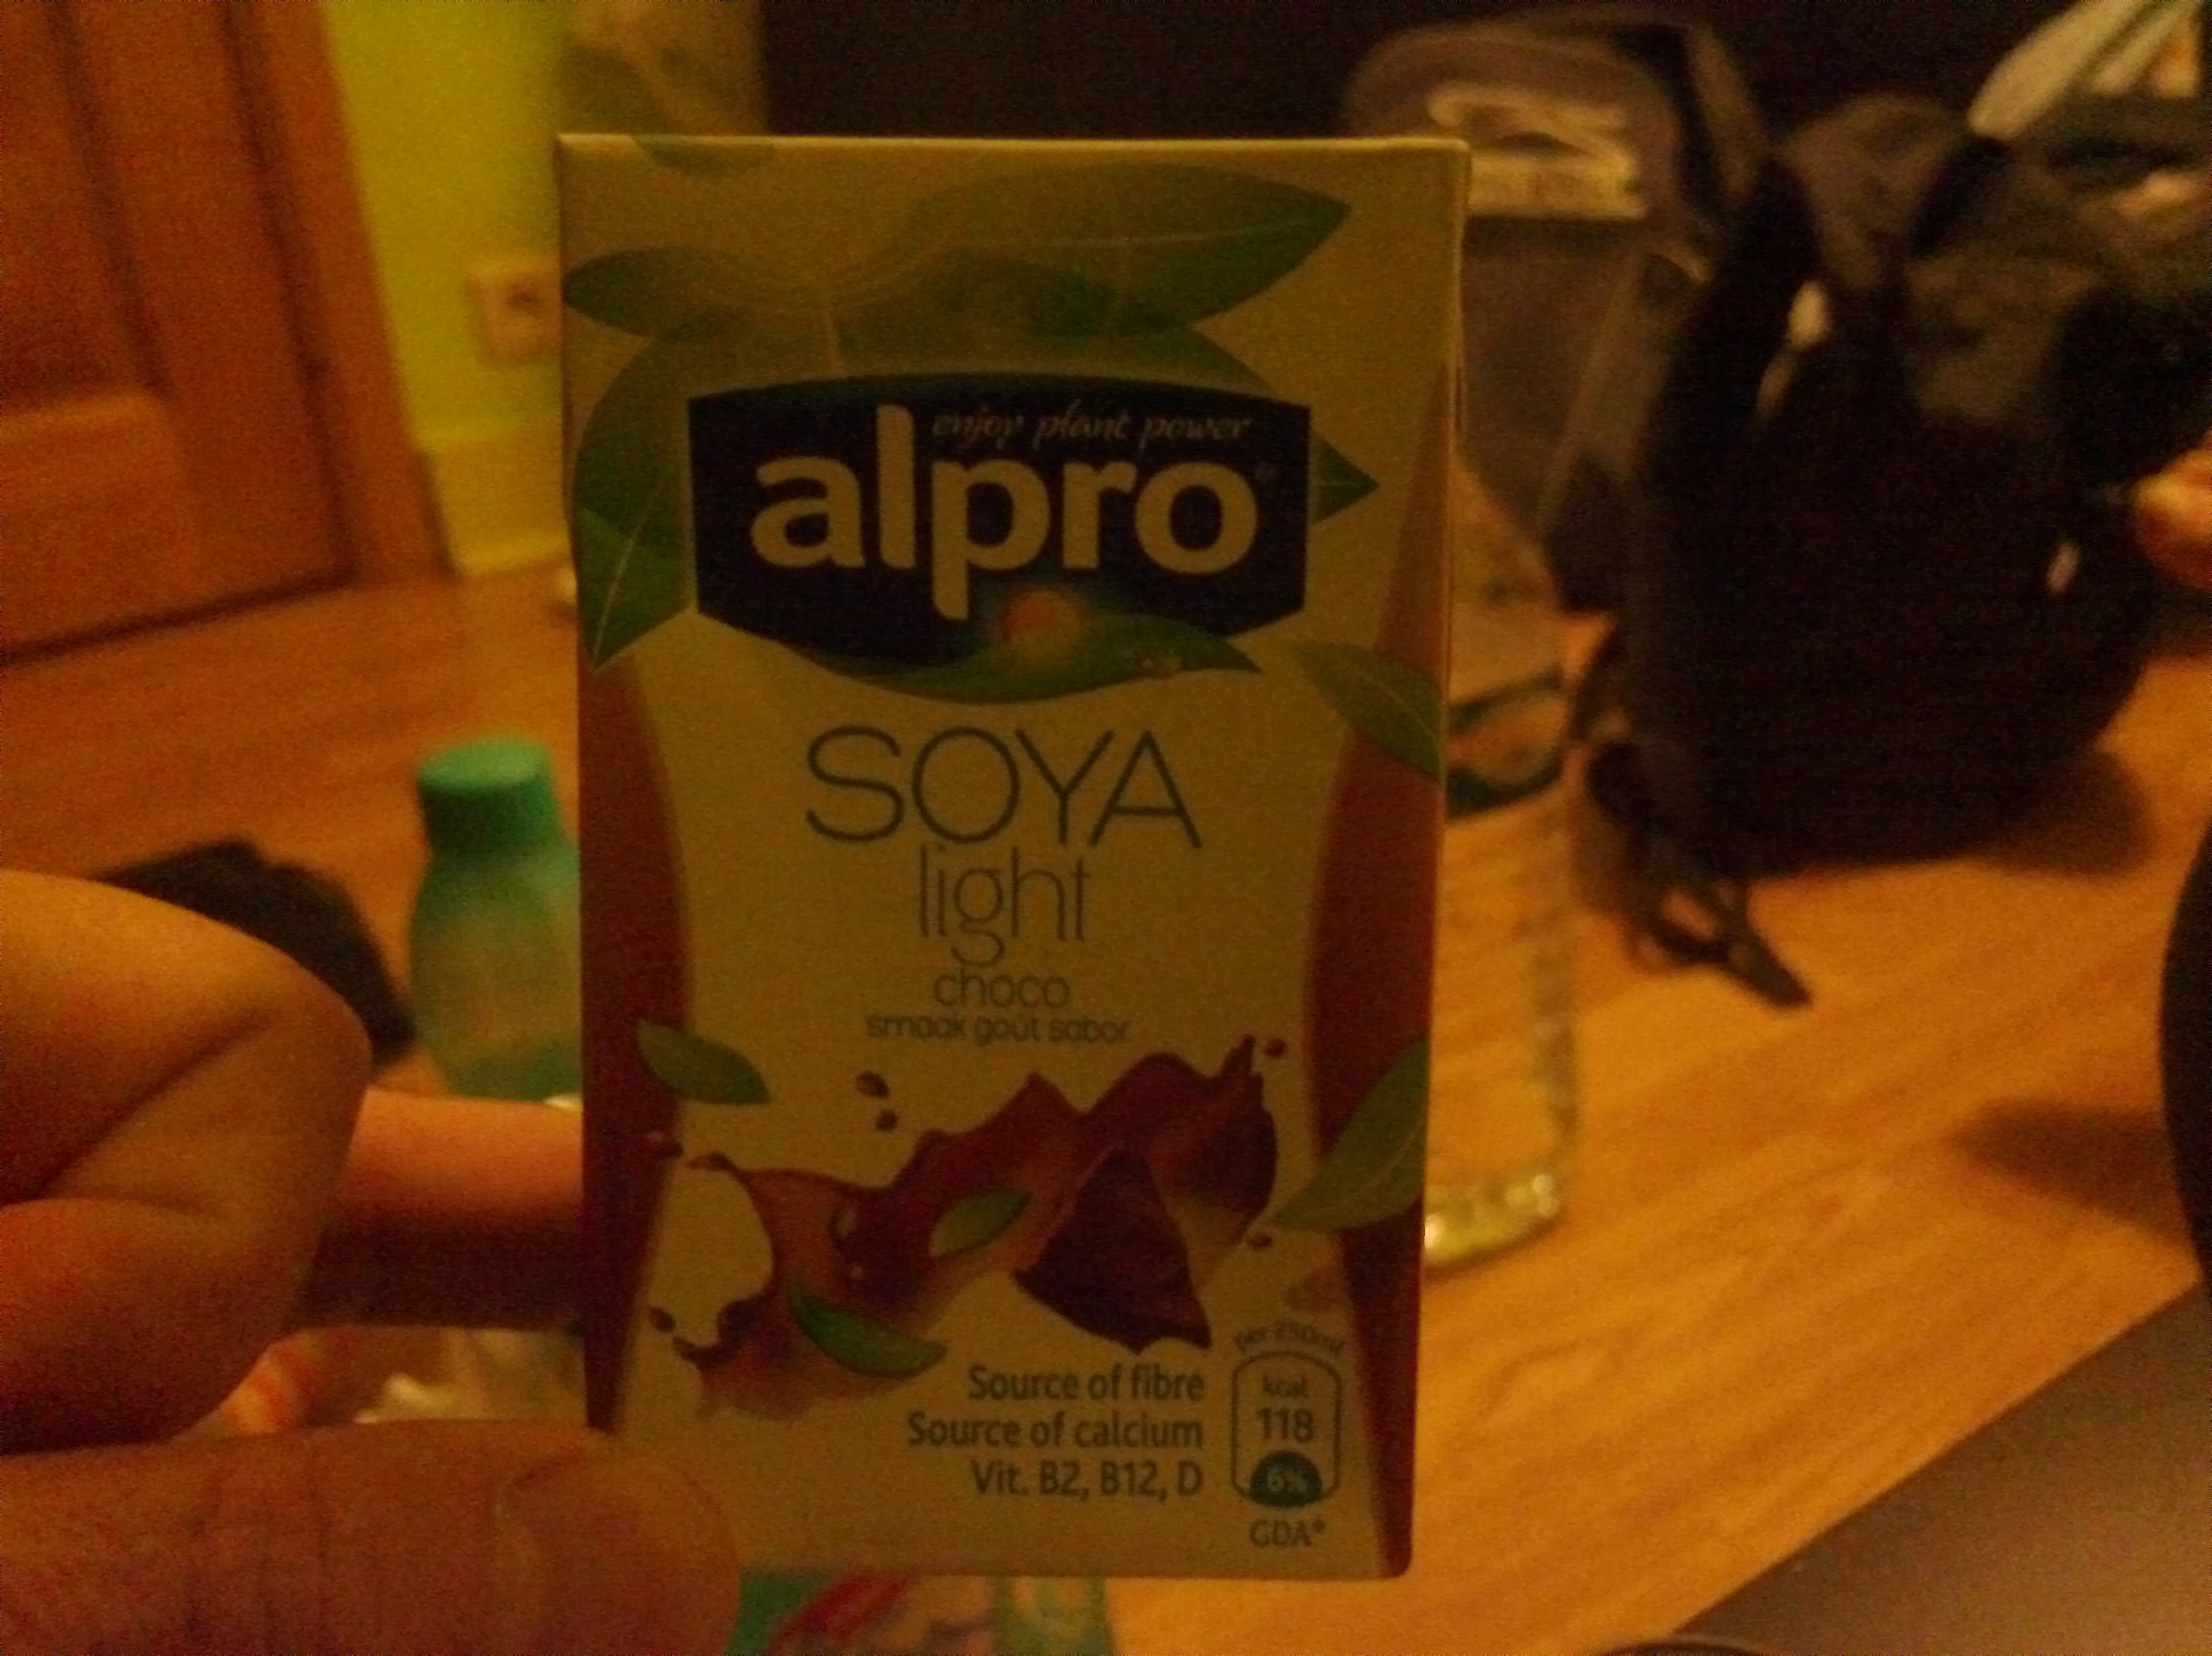 Alpro soya light choco 6 for Alpro soya cuisine light